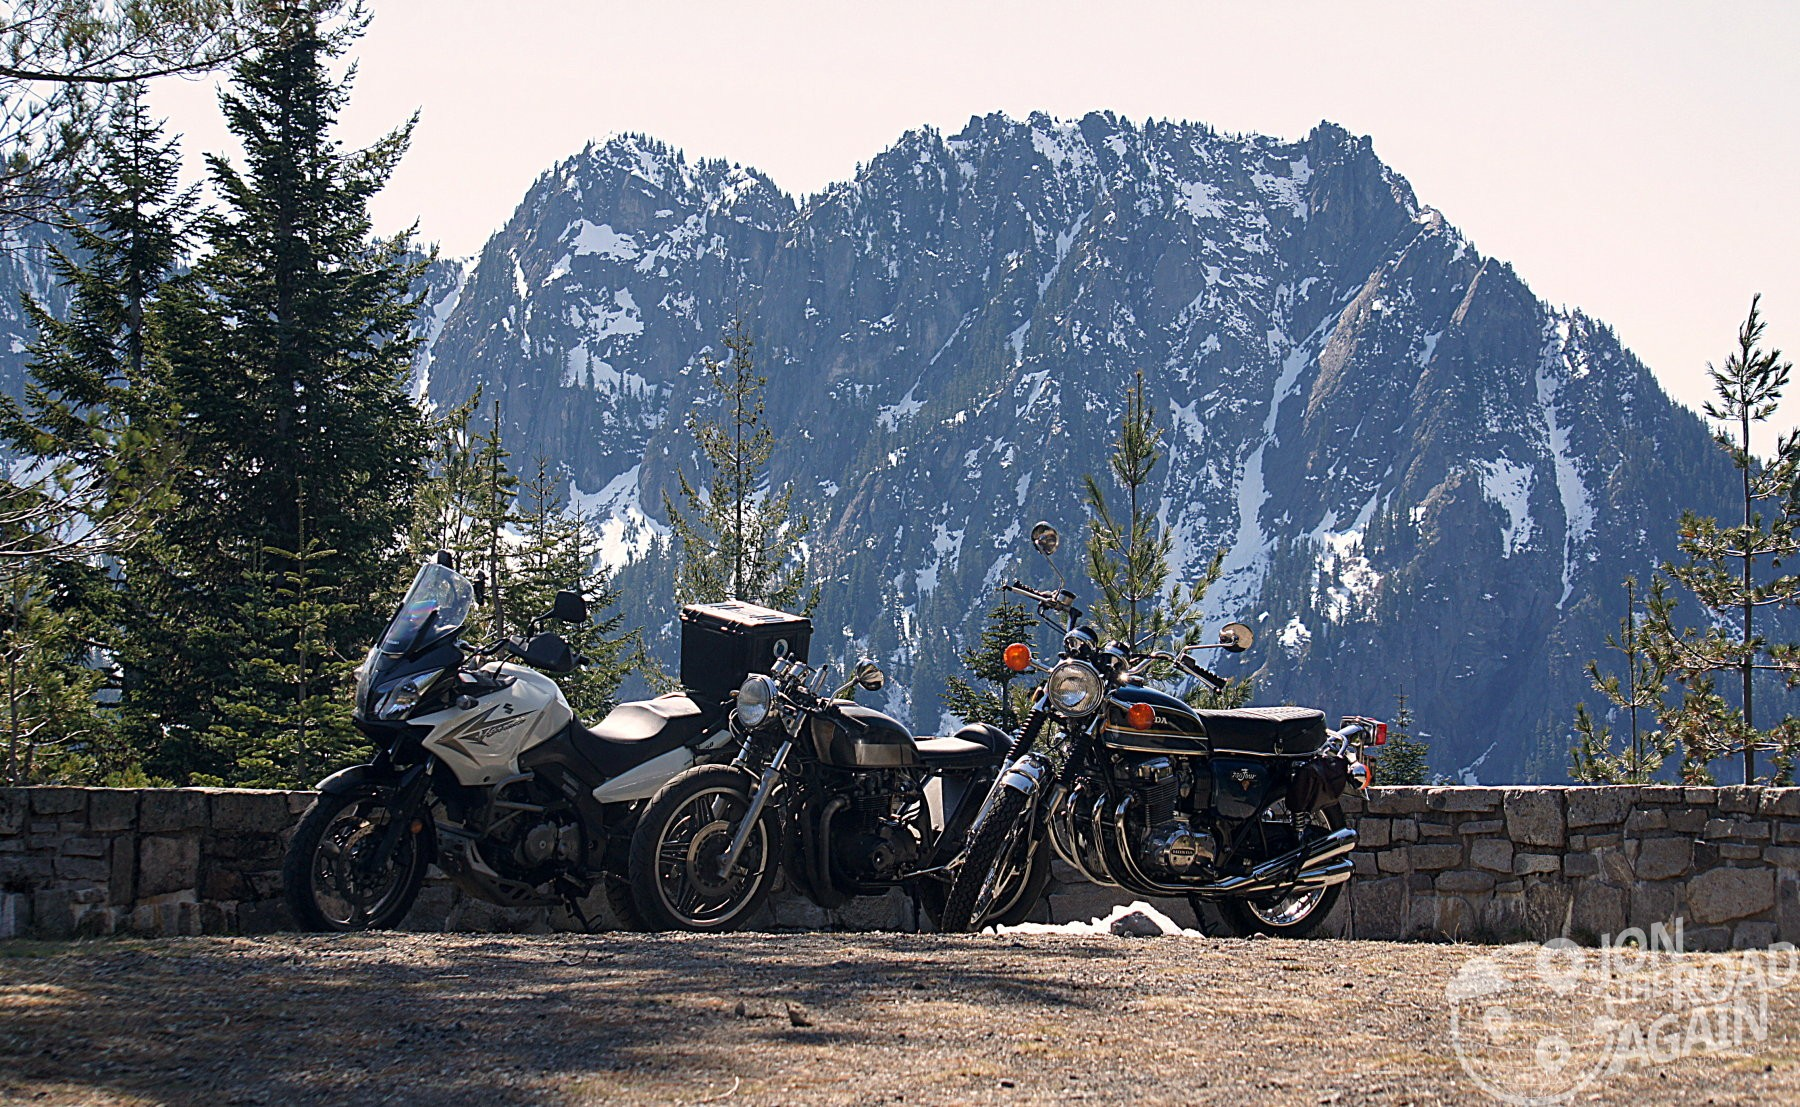 Just the bikes